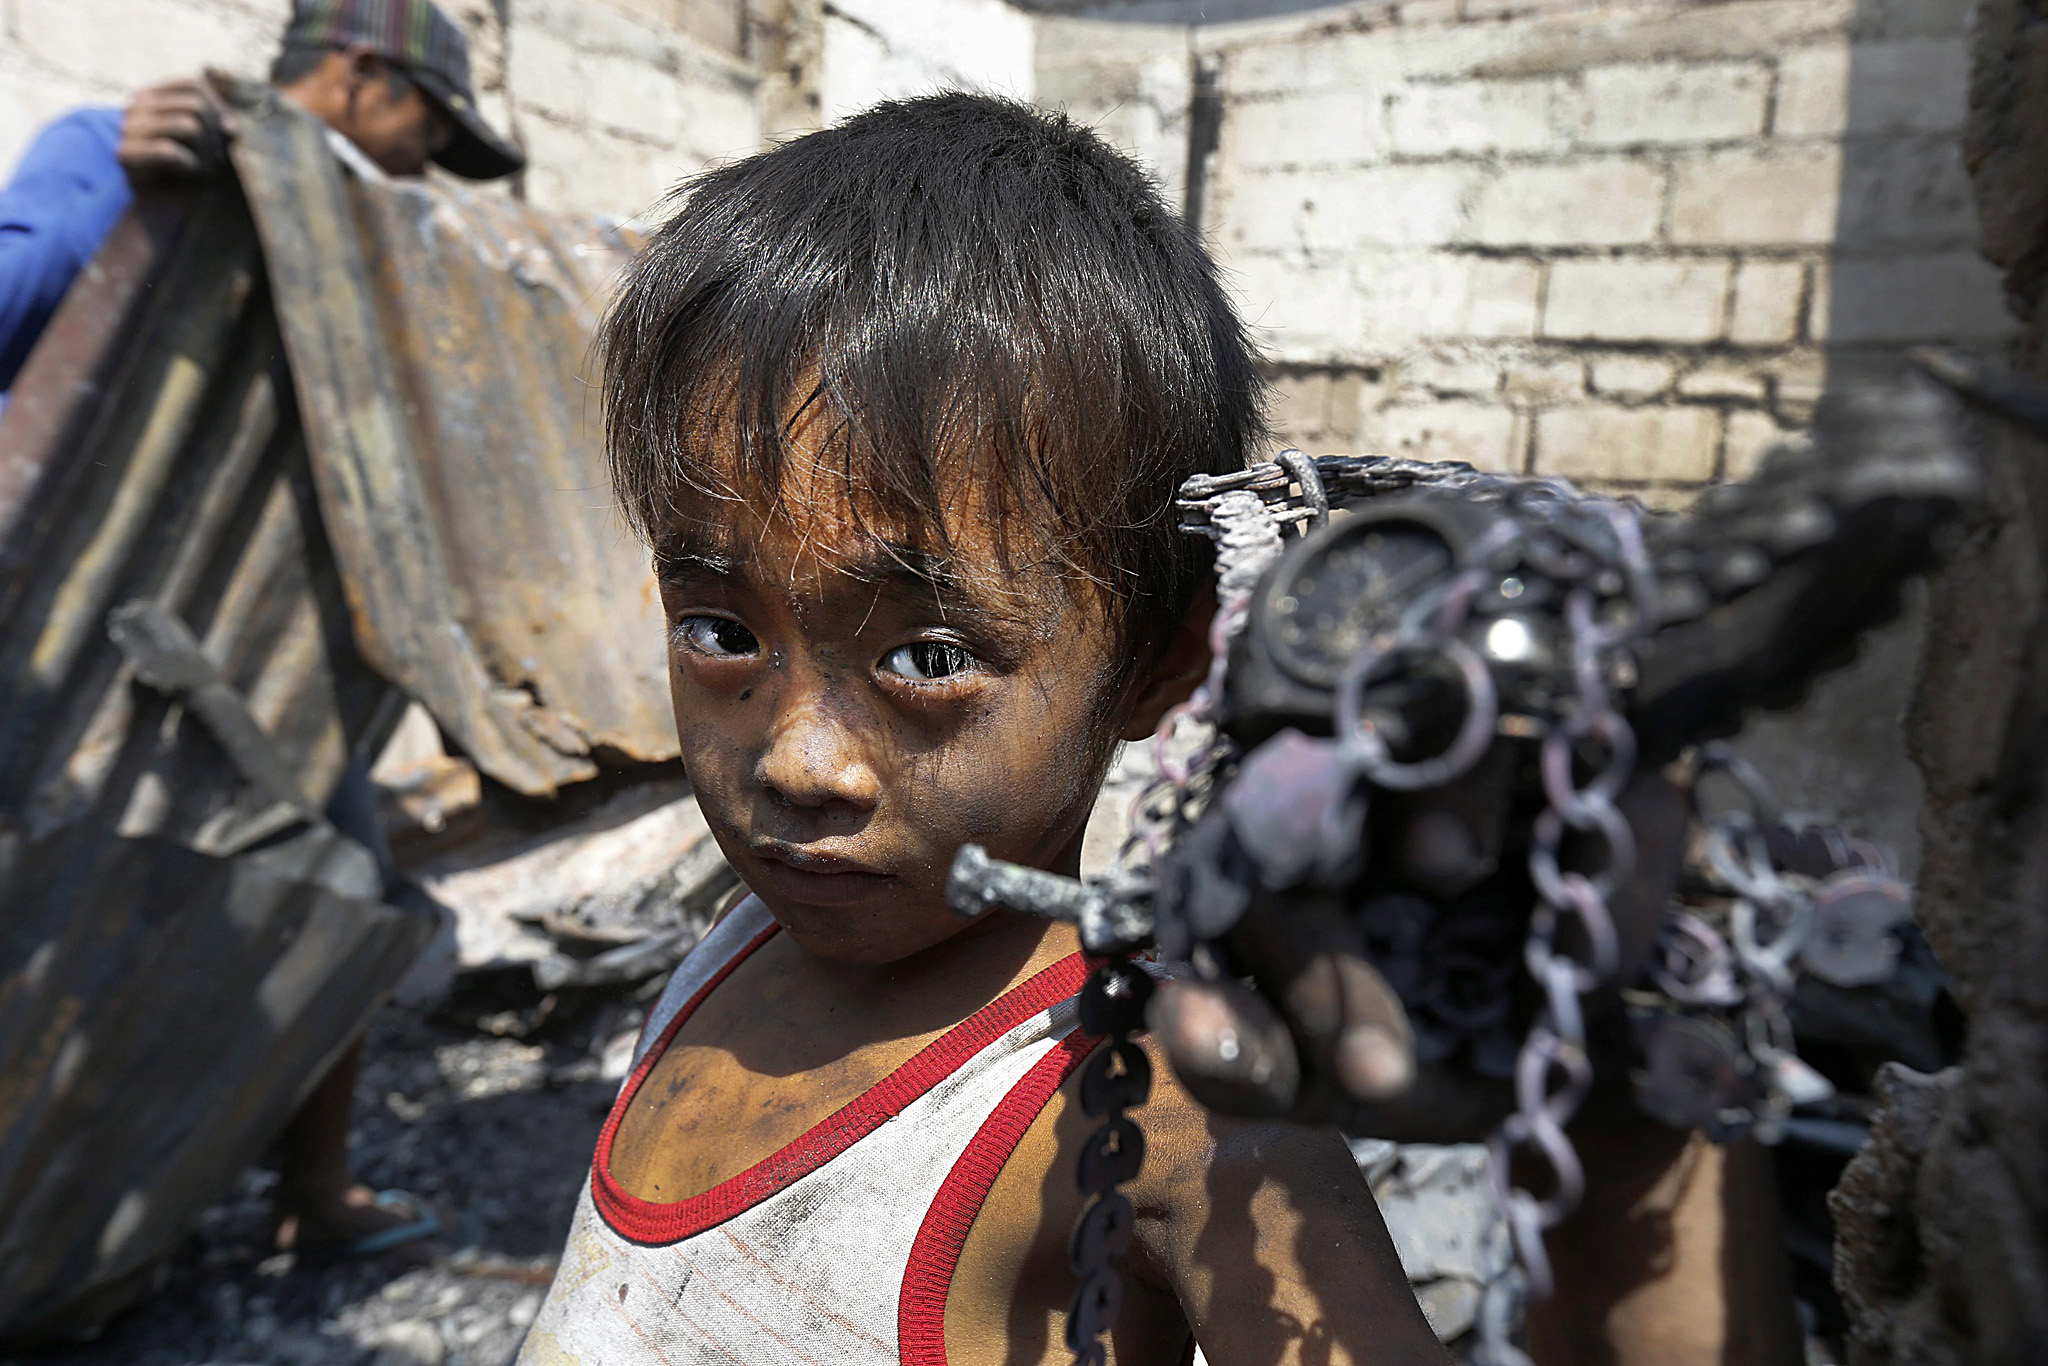 Fire razed 250 houses and killed two residents...epa04667151 Majay Bugarin,5, shows  materials  he collected among debris after a fire that razed a slum area in Malabon City, north of Manila, Philippines, 18 March 2015. According to arson investigators from the Bureau of Fire Protection (BFP), two residents were killed and  more than 500 families were rendered homeless by a blaze that swept through some 400 houses at a shanty town amid the start of the country's fire safety month. Fire Prevention Month is observed in the month of March, with incidents of fire expected to increase during summer.  EPA/DENNIS M. SABANGAN